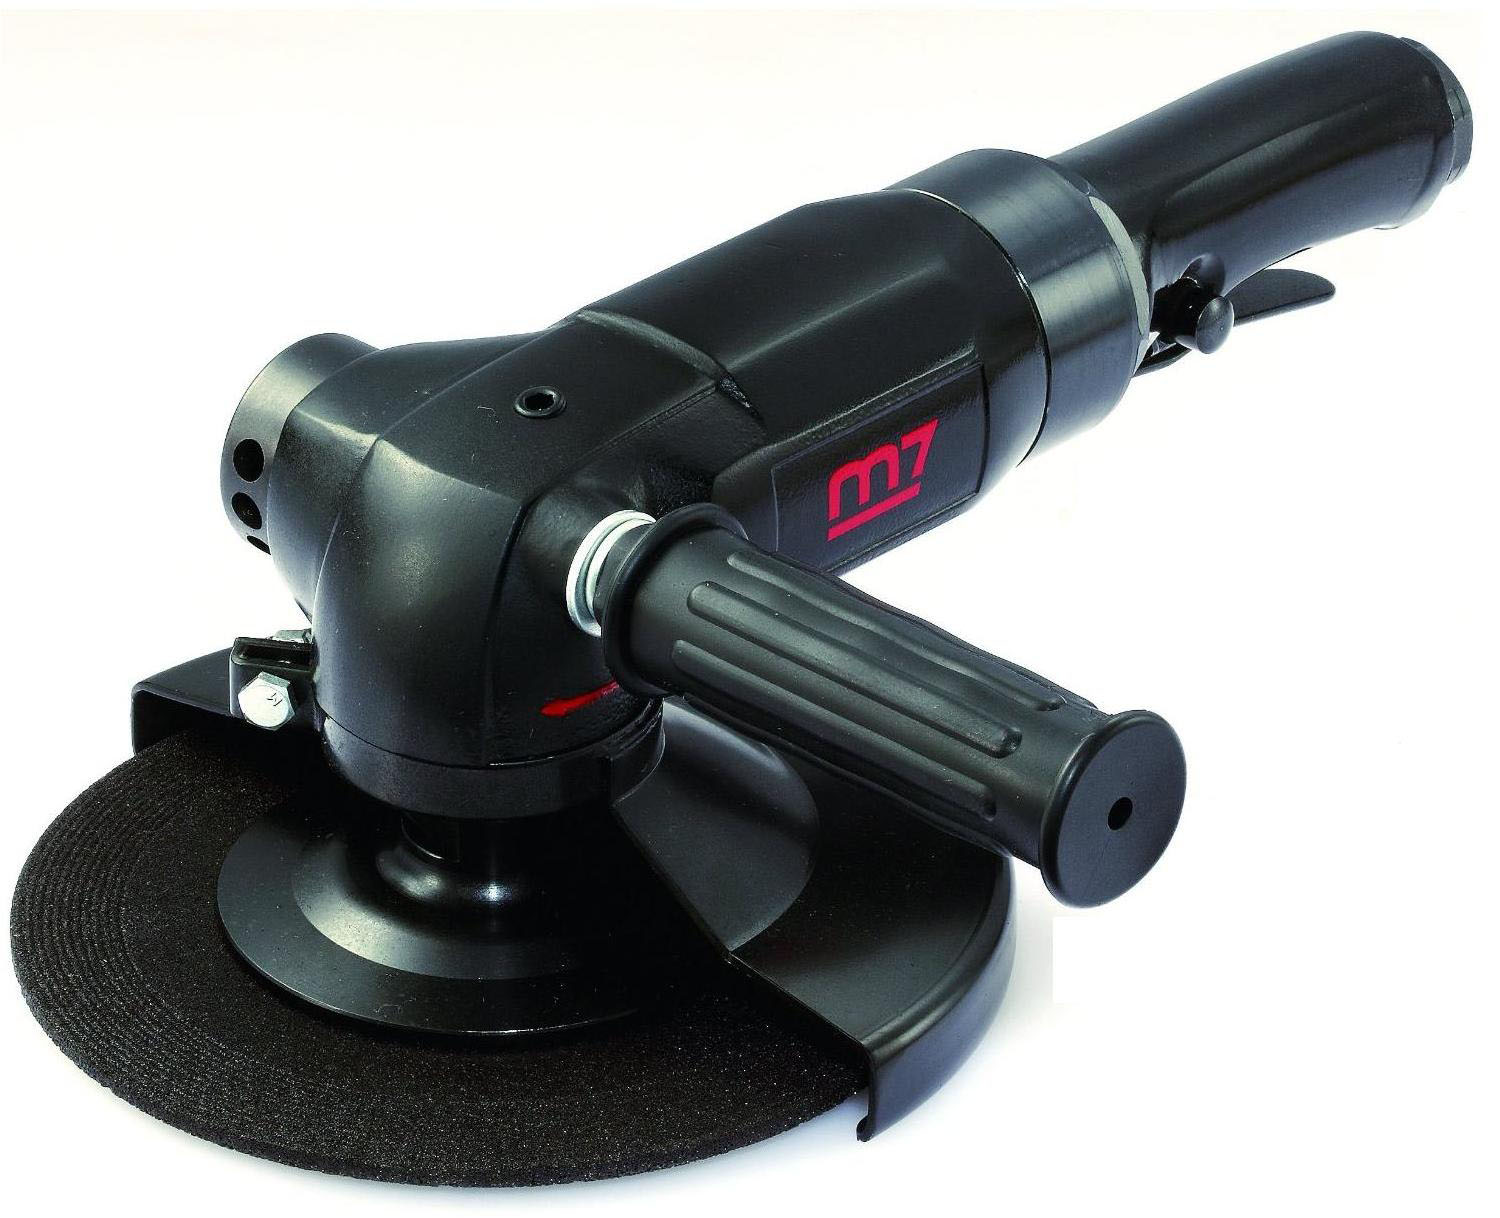 MIGHTY SEVEN Air Angle Grinder in Dubai,UAE - QB-177 from AABTools